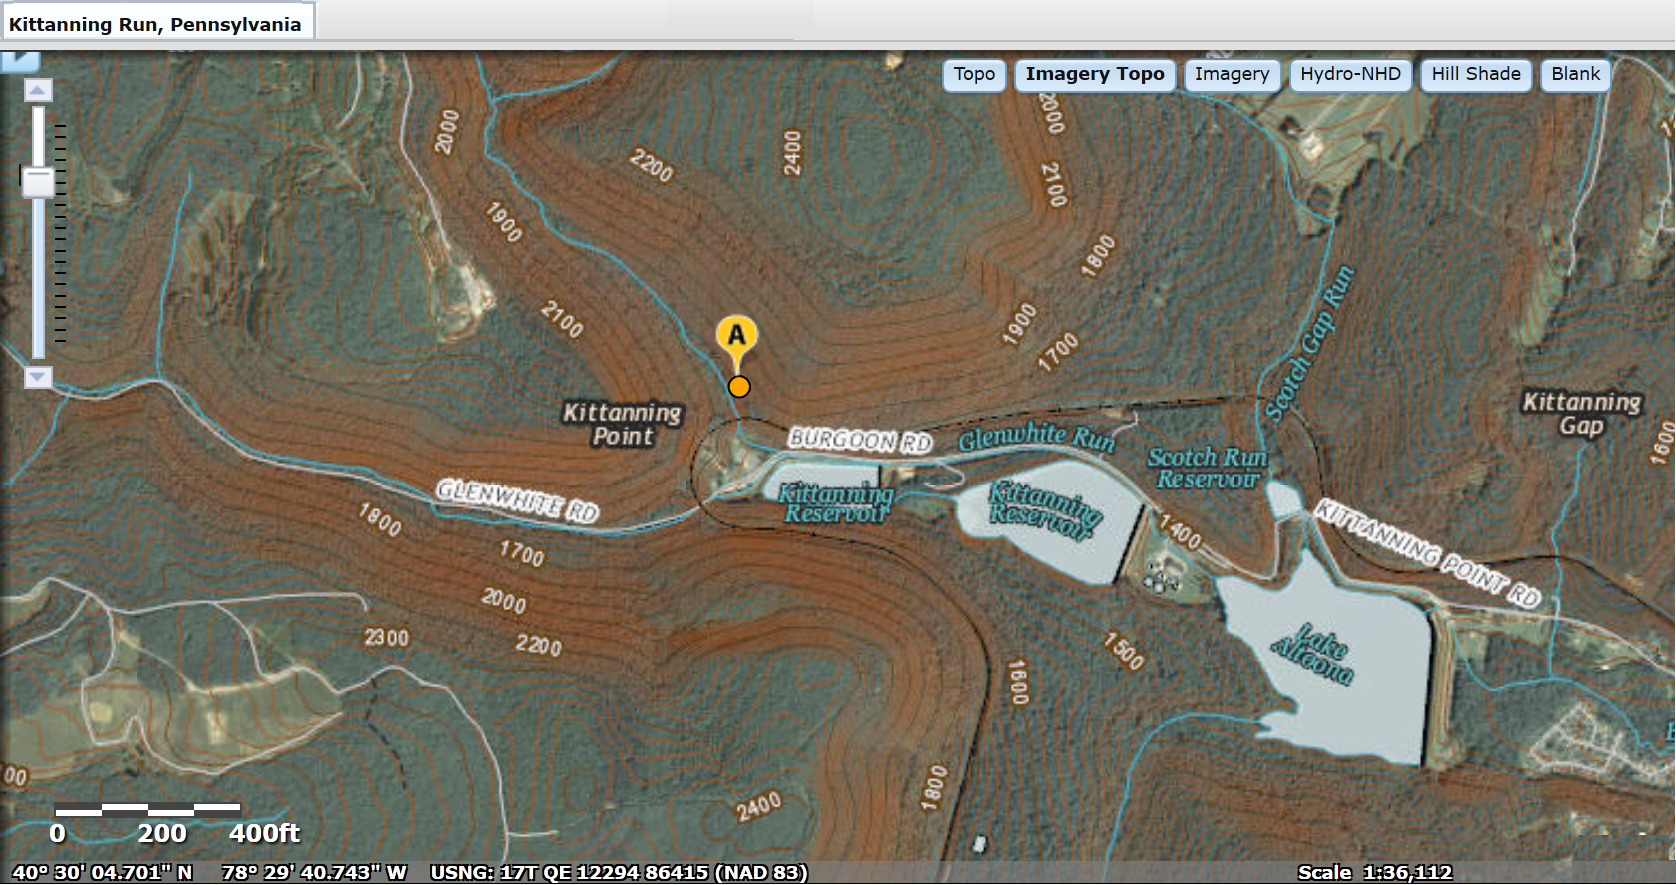 File:USGS National Map viewer showing Kittanning Run, Pennsylvania ...